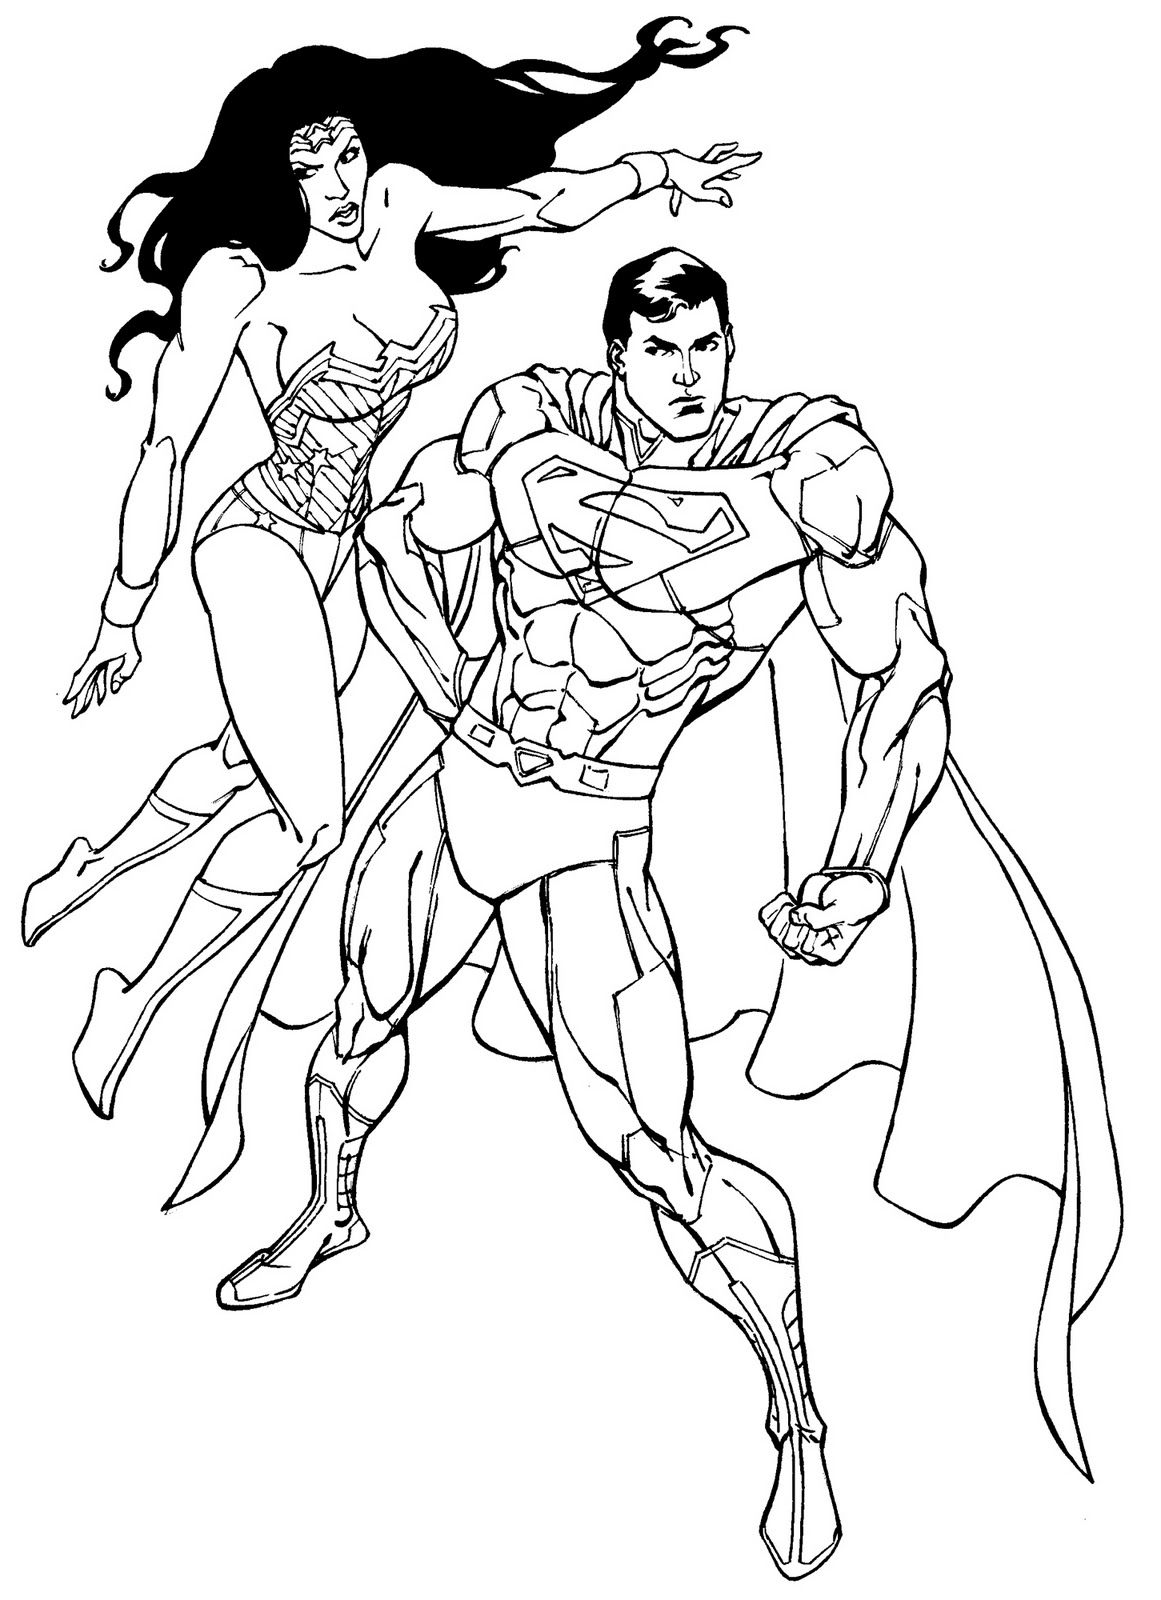 Pin By Becky Mayben On Superman And Wonder Woman Superman Coloring Pages Superhero Coloring Pages Coloring Pages